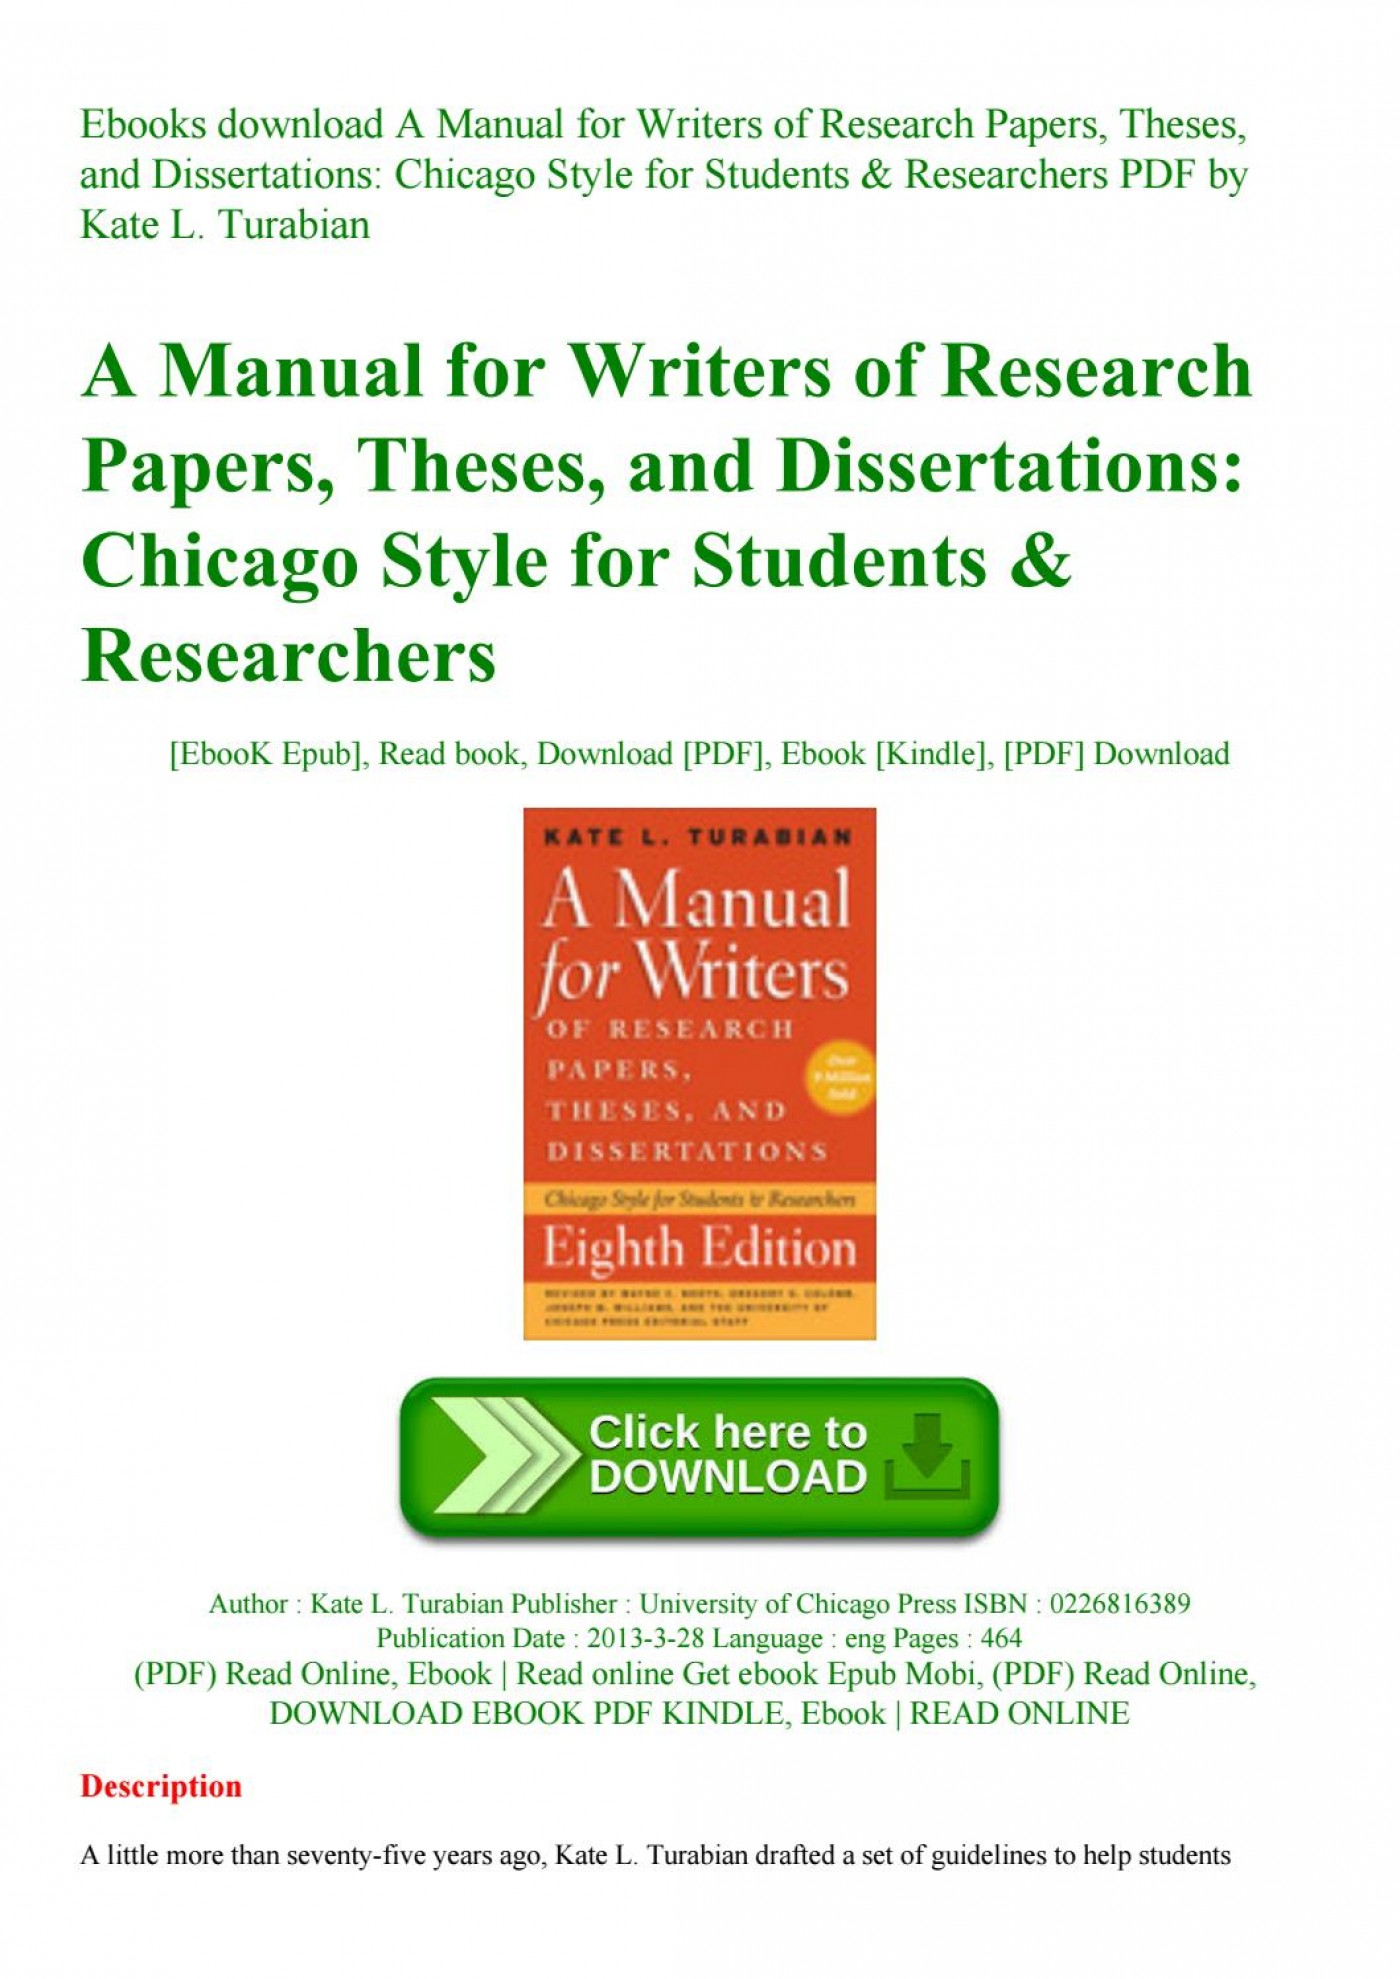 018 Page 1 Research Paper Manual For Writers Of Papers Theses And Sensational A Dissertations 8th Edition Pdf Eighth 1400